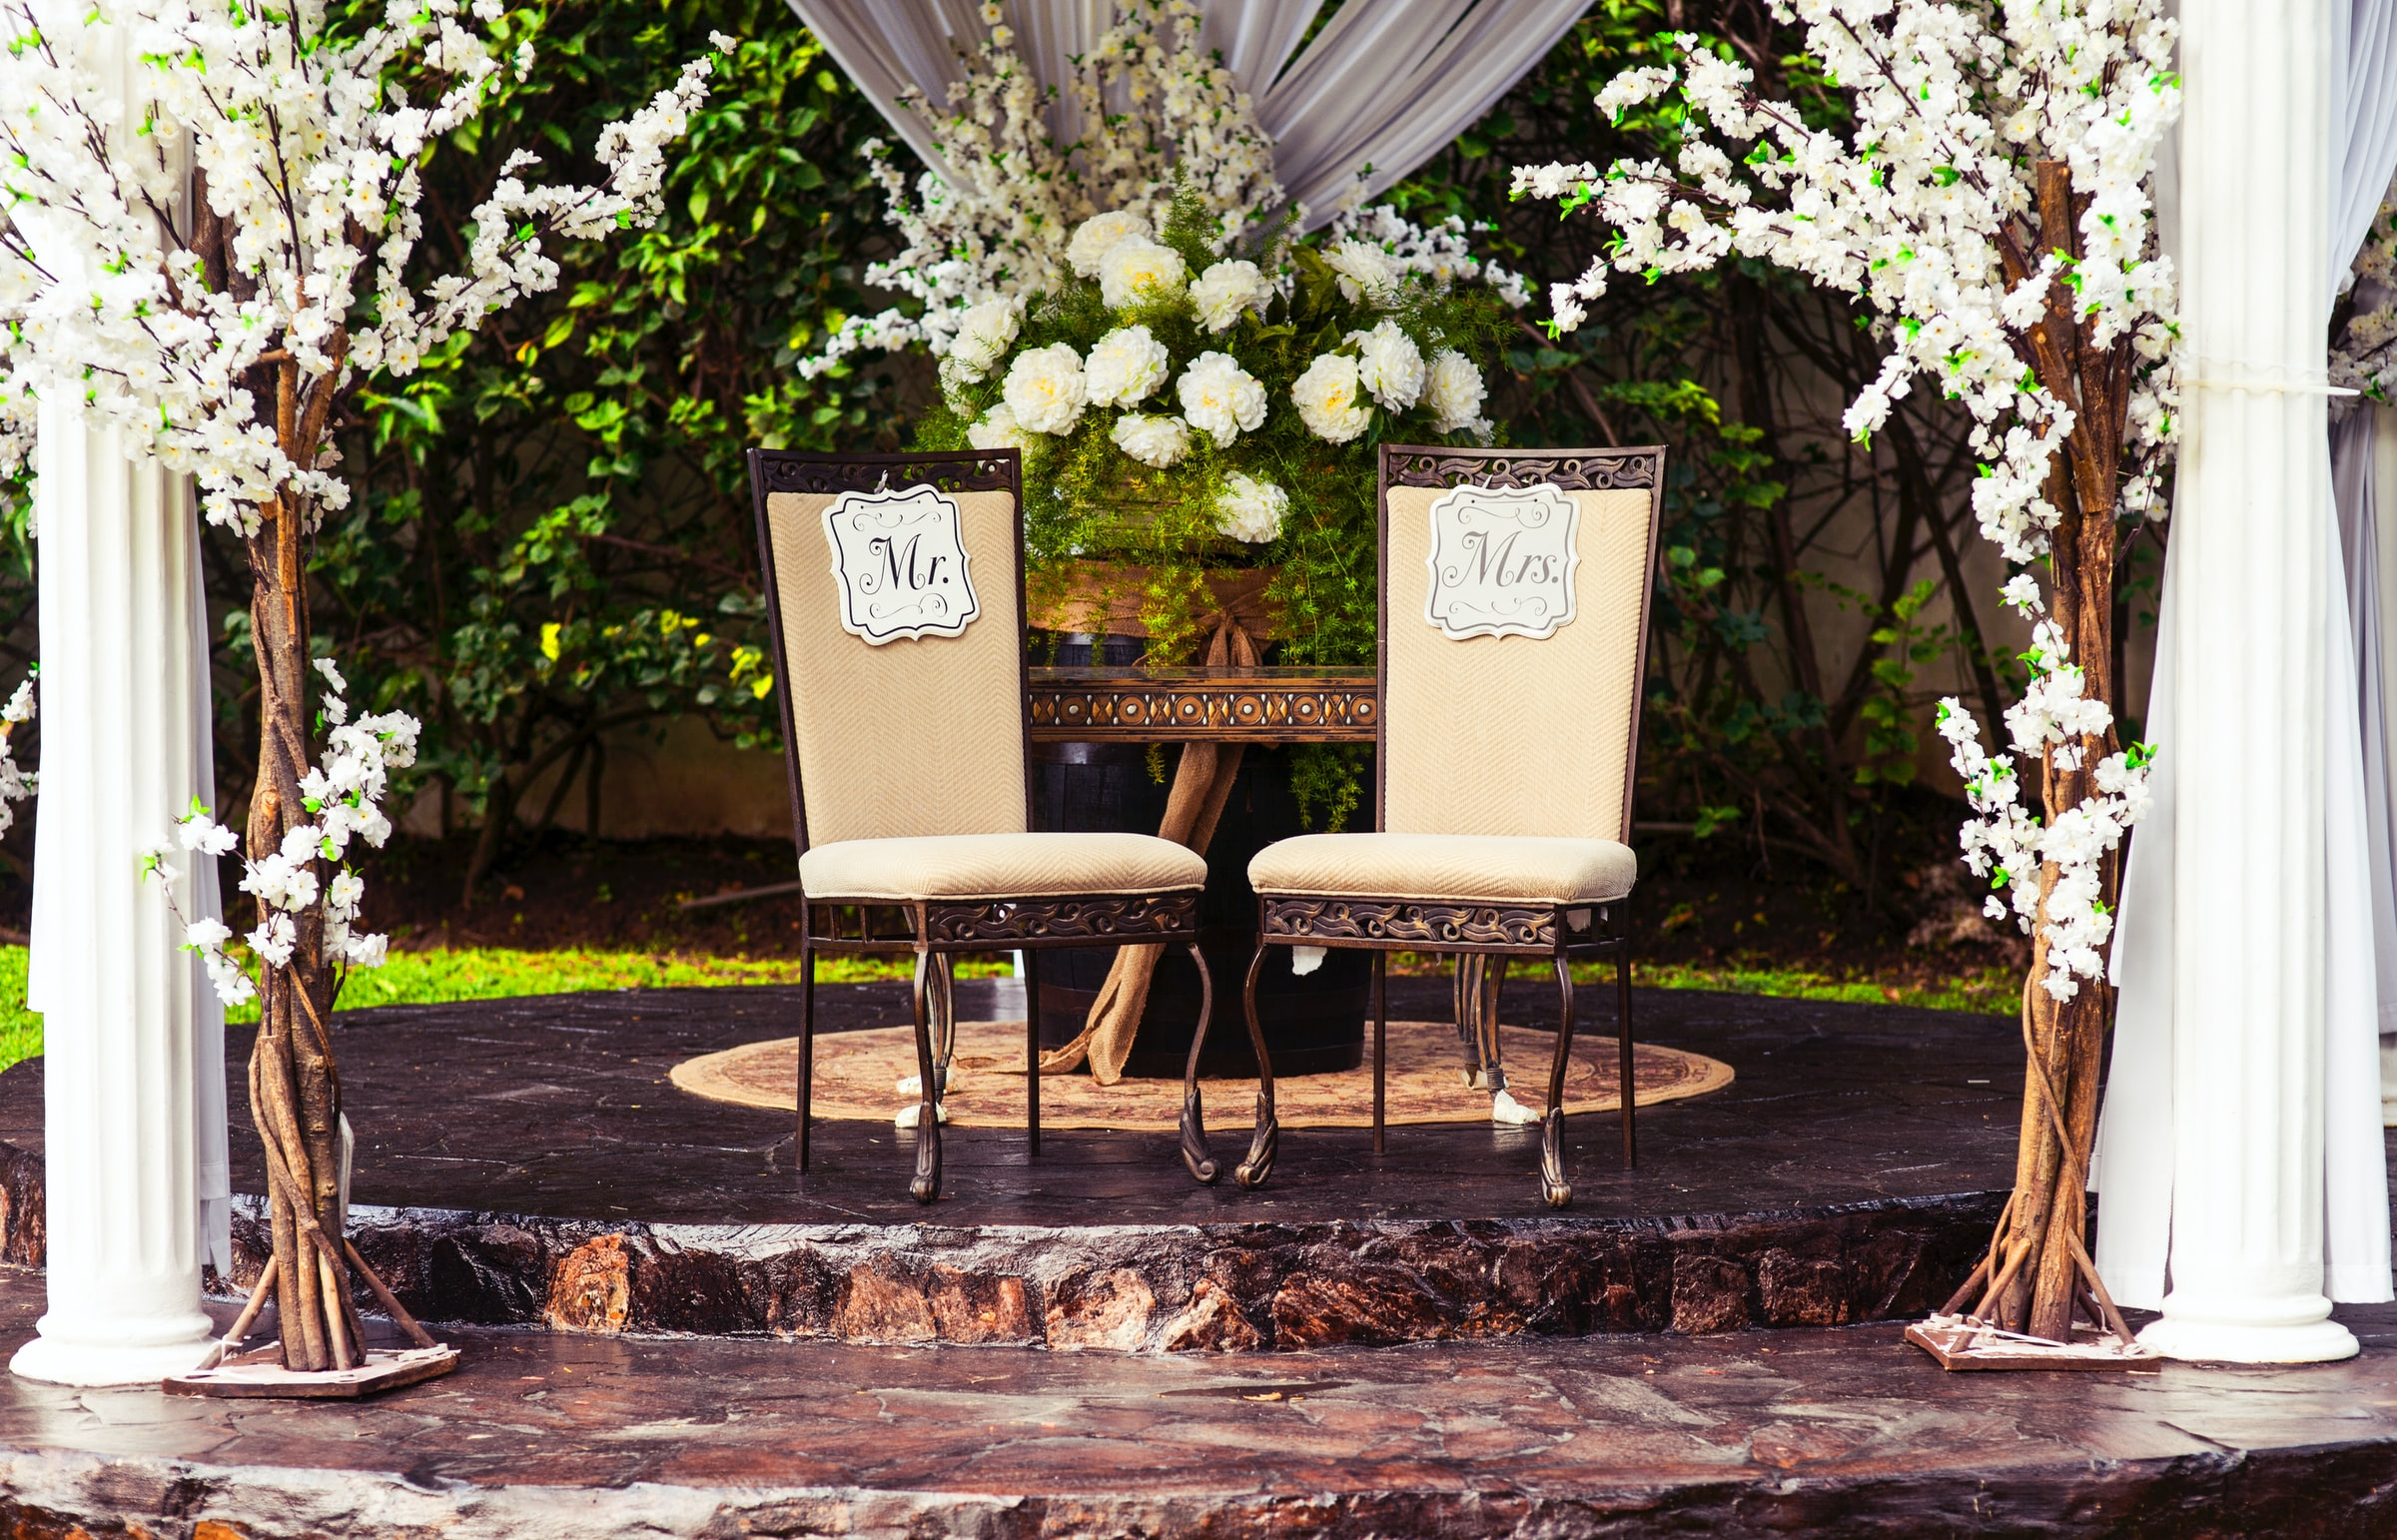 picture of mr and mrs seats at a wedding how to choose the perfect wedding date